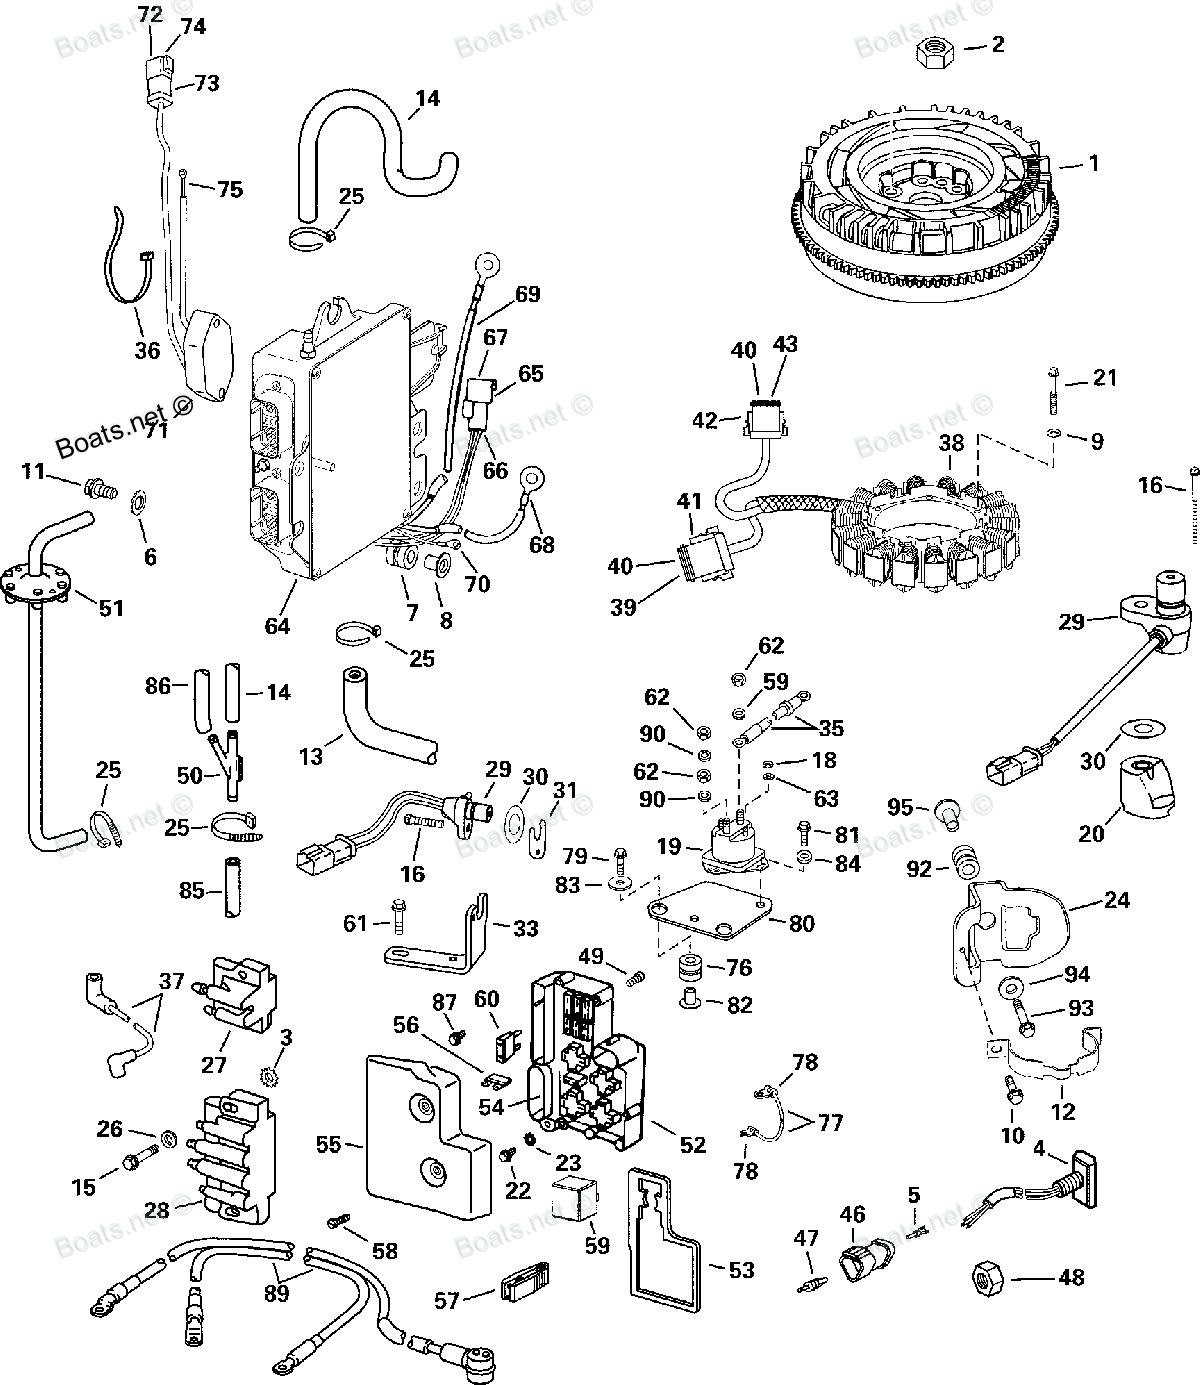 1988 Evinrude Ignition Switch Wiring Diagram further Sea King Outboard Fuel Pump further Johnson 70 Wiring Diagram besides Force Outboard Wiring Diagram On Mercury Motor Parts in addition Evinrude 65 Hp Outboard Motor. on 1970 evinrude 115 hp outboard